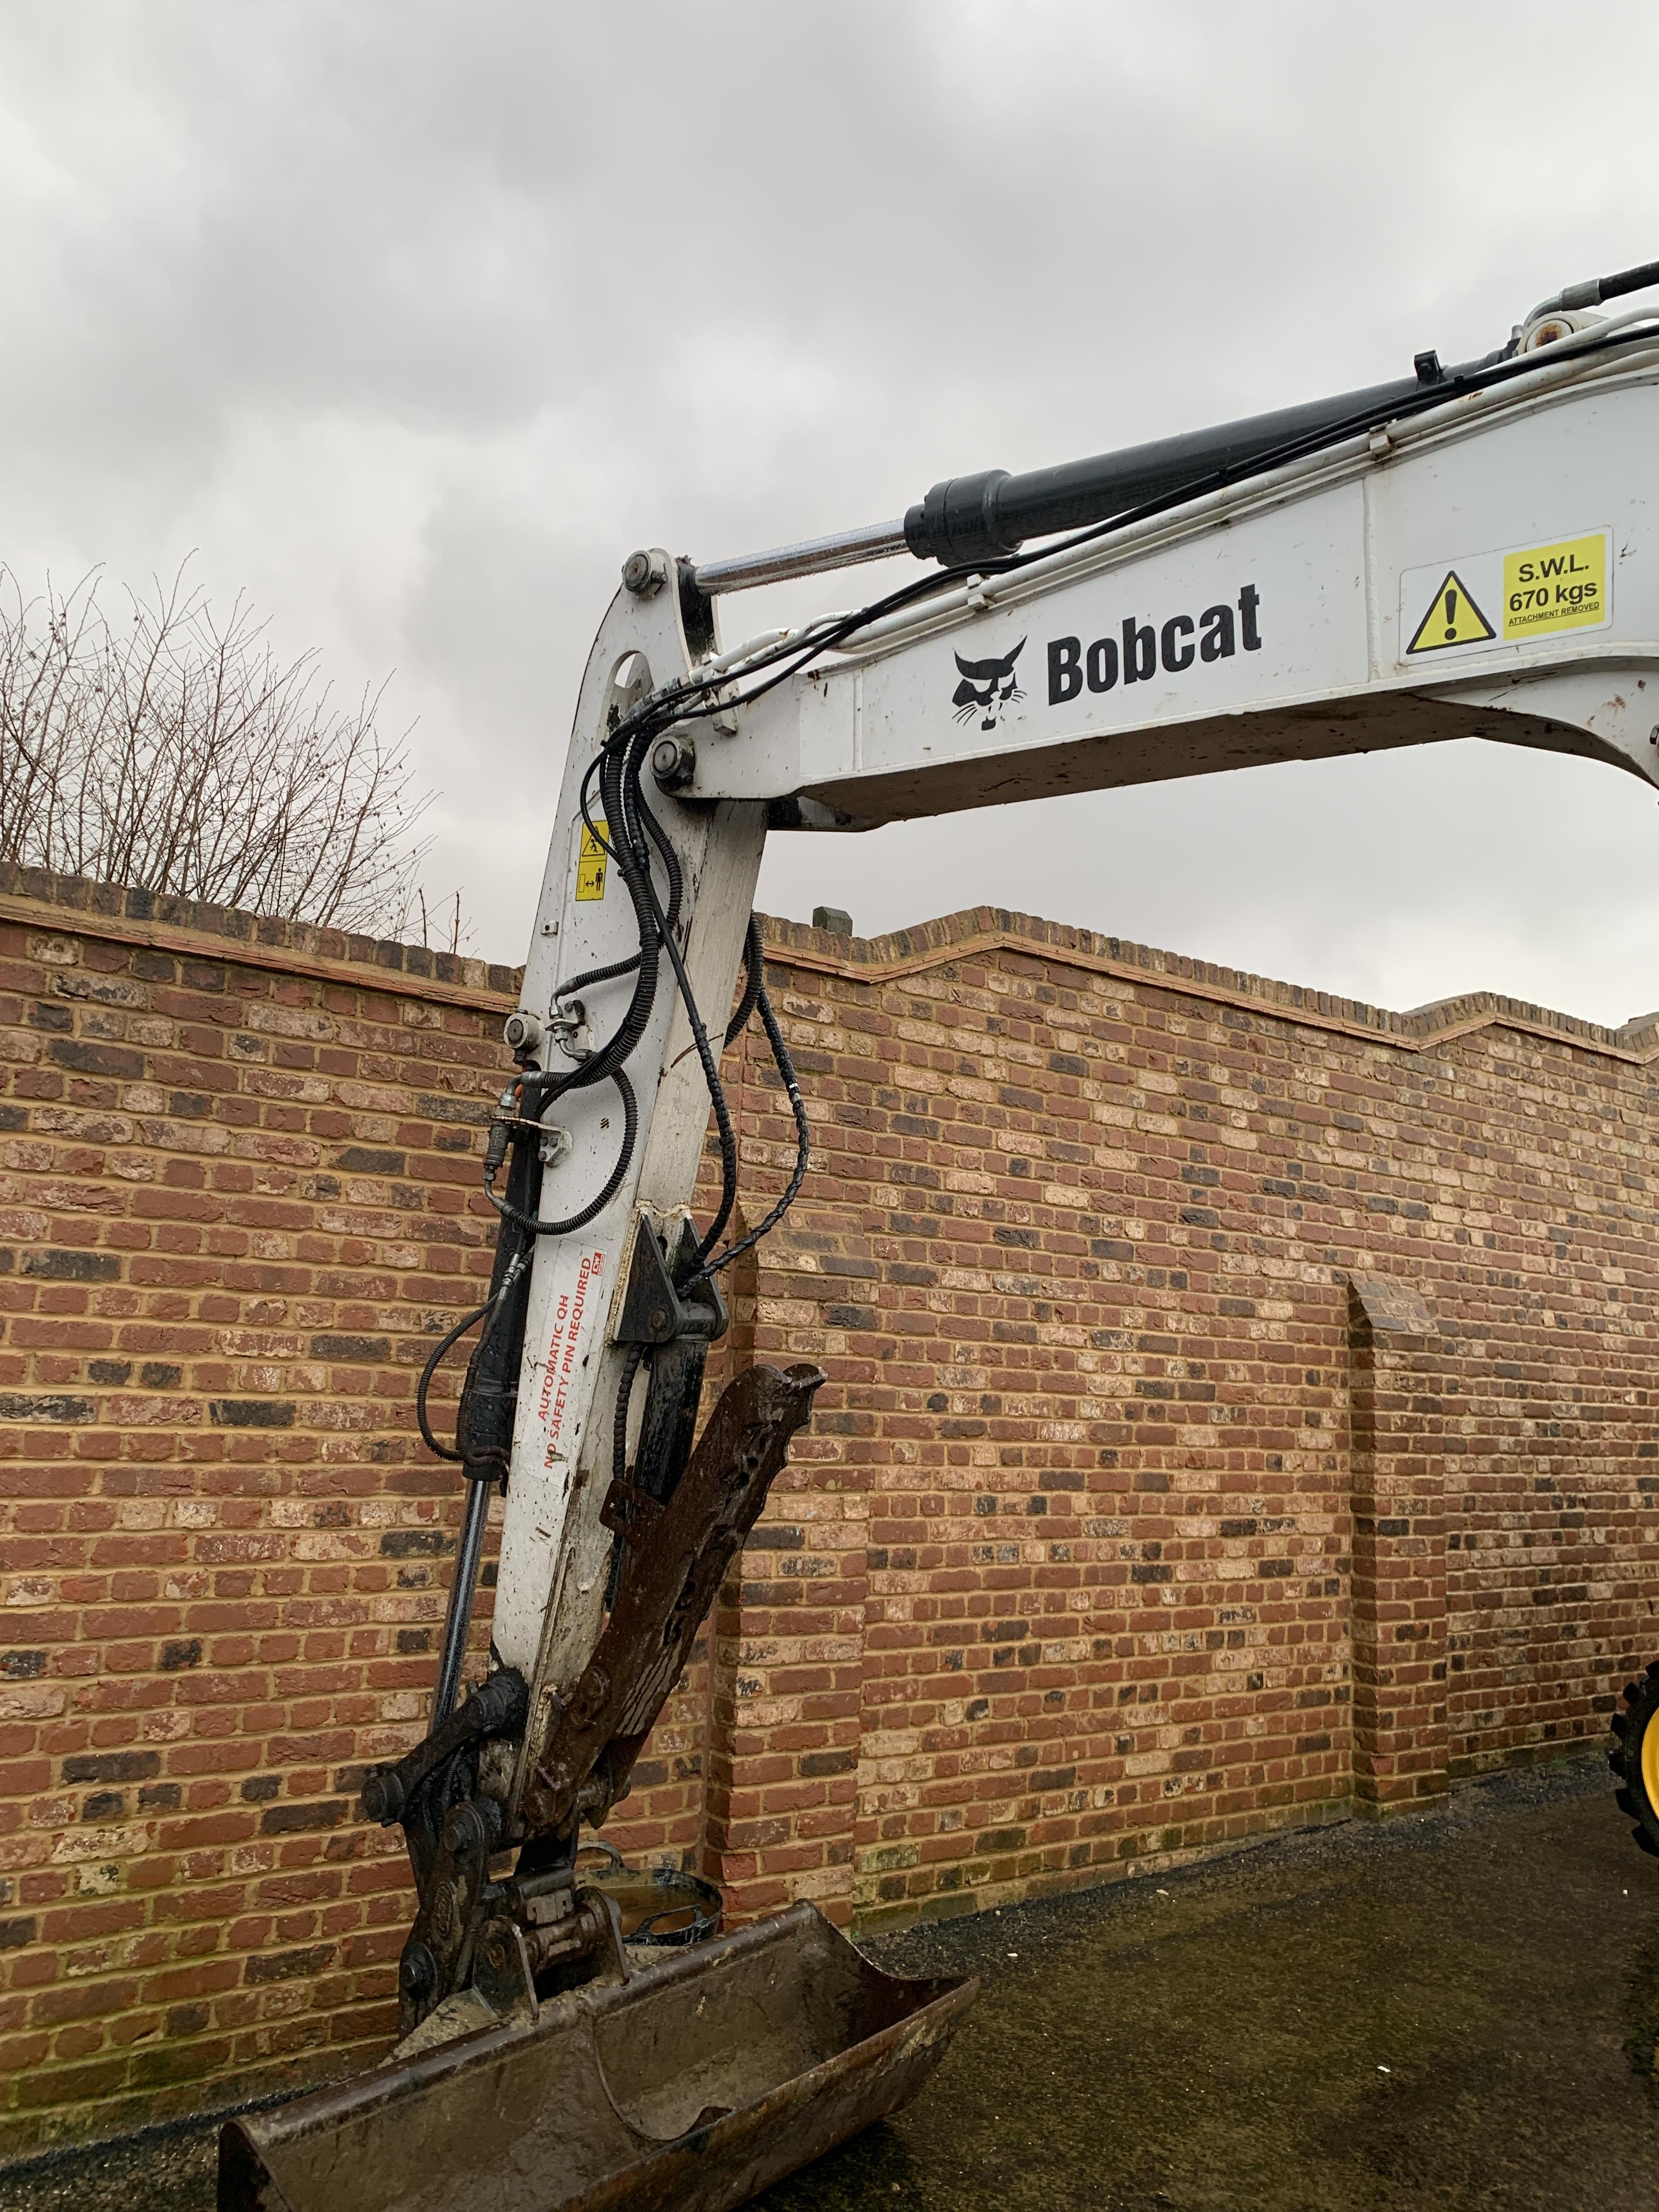 BOBCAT E80 TRACKED CRAWLER EXCAVATOR / DIGGER, C/W HYDRAULIC THUMB, YEAR 2012, RUNS, WORKS AND DIGS - Image 7 of 7